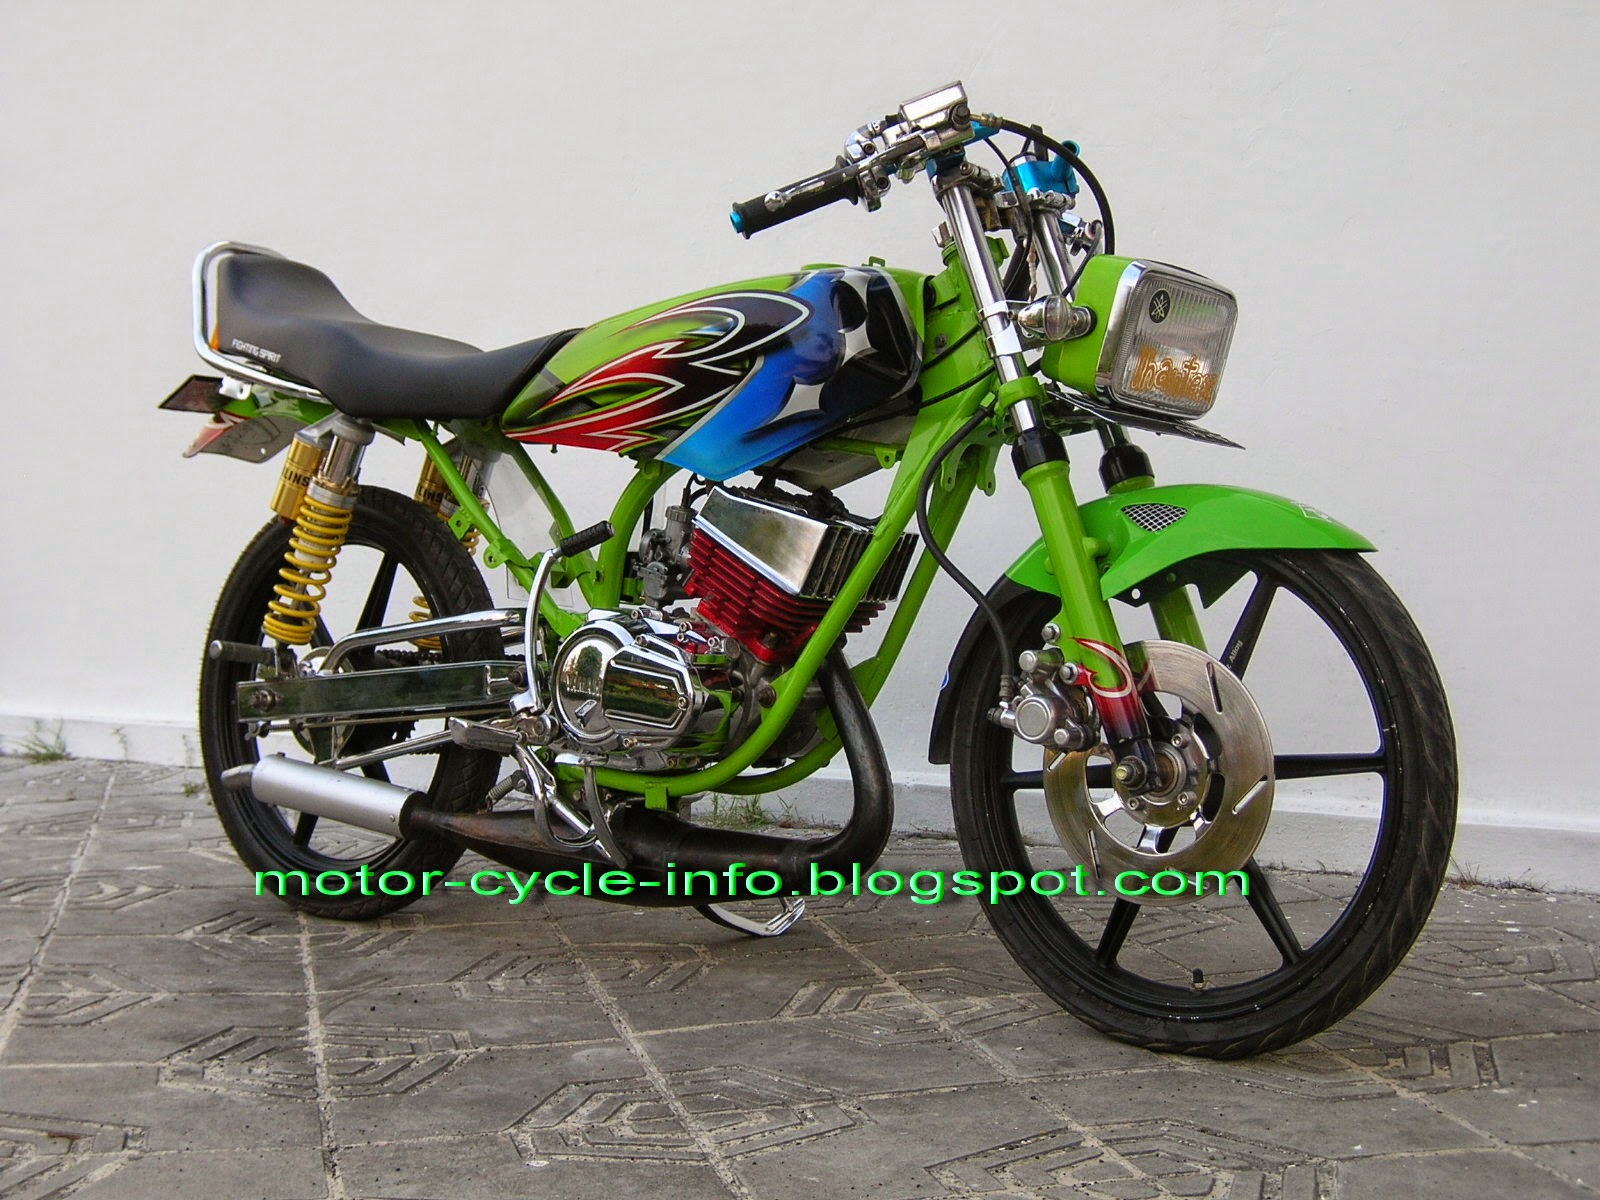 Revo Fit fi Modif Modifikasi Motor Revo Fit